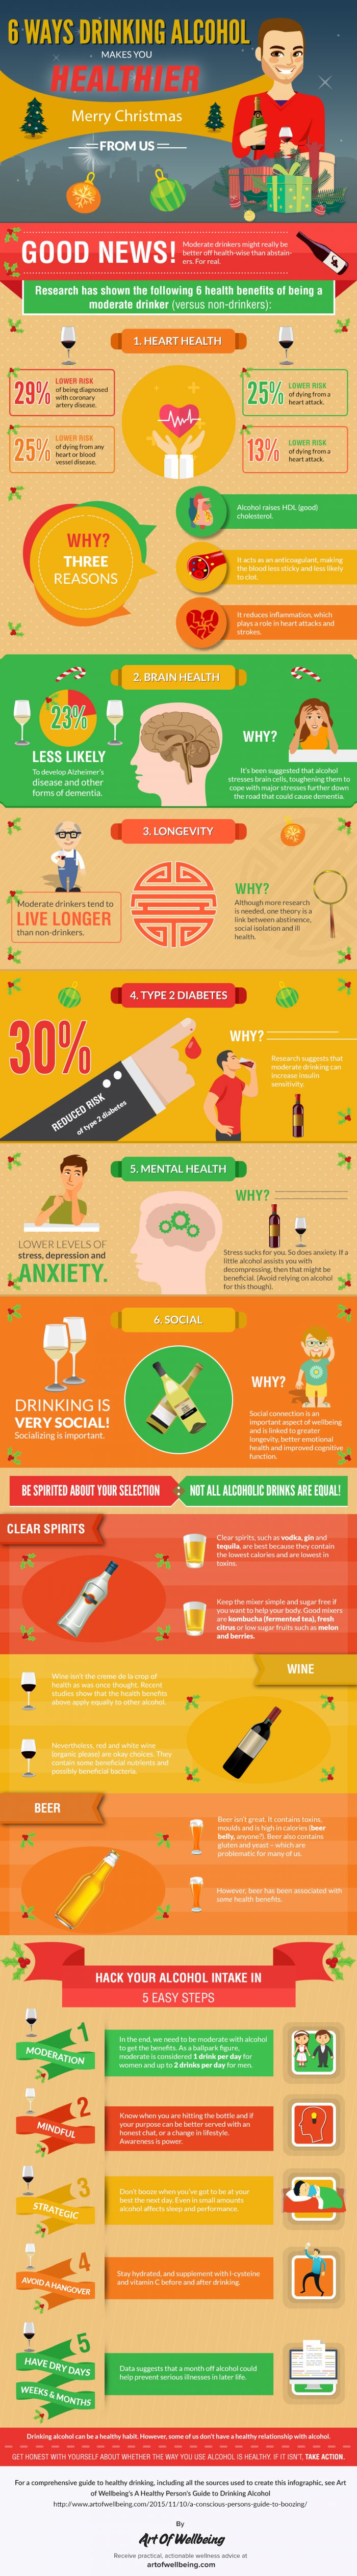 6-Ways-Drinking-Achohol-Makes-You-Healthier-New-500-kb